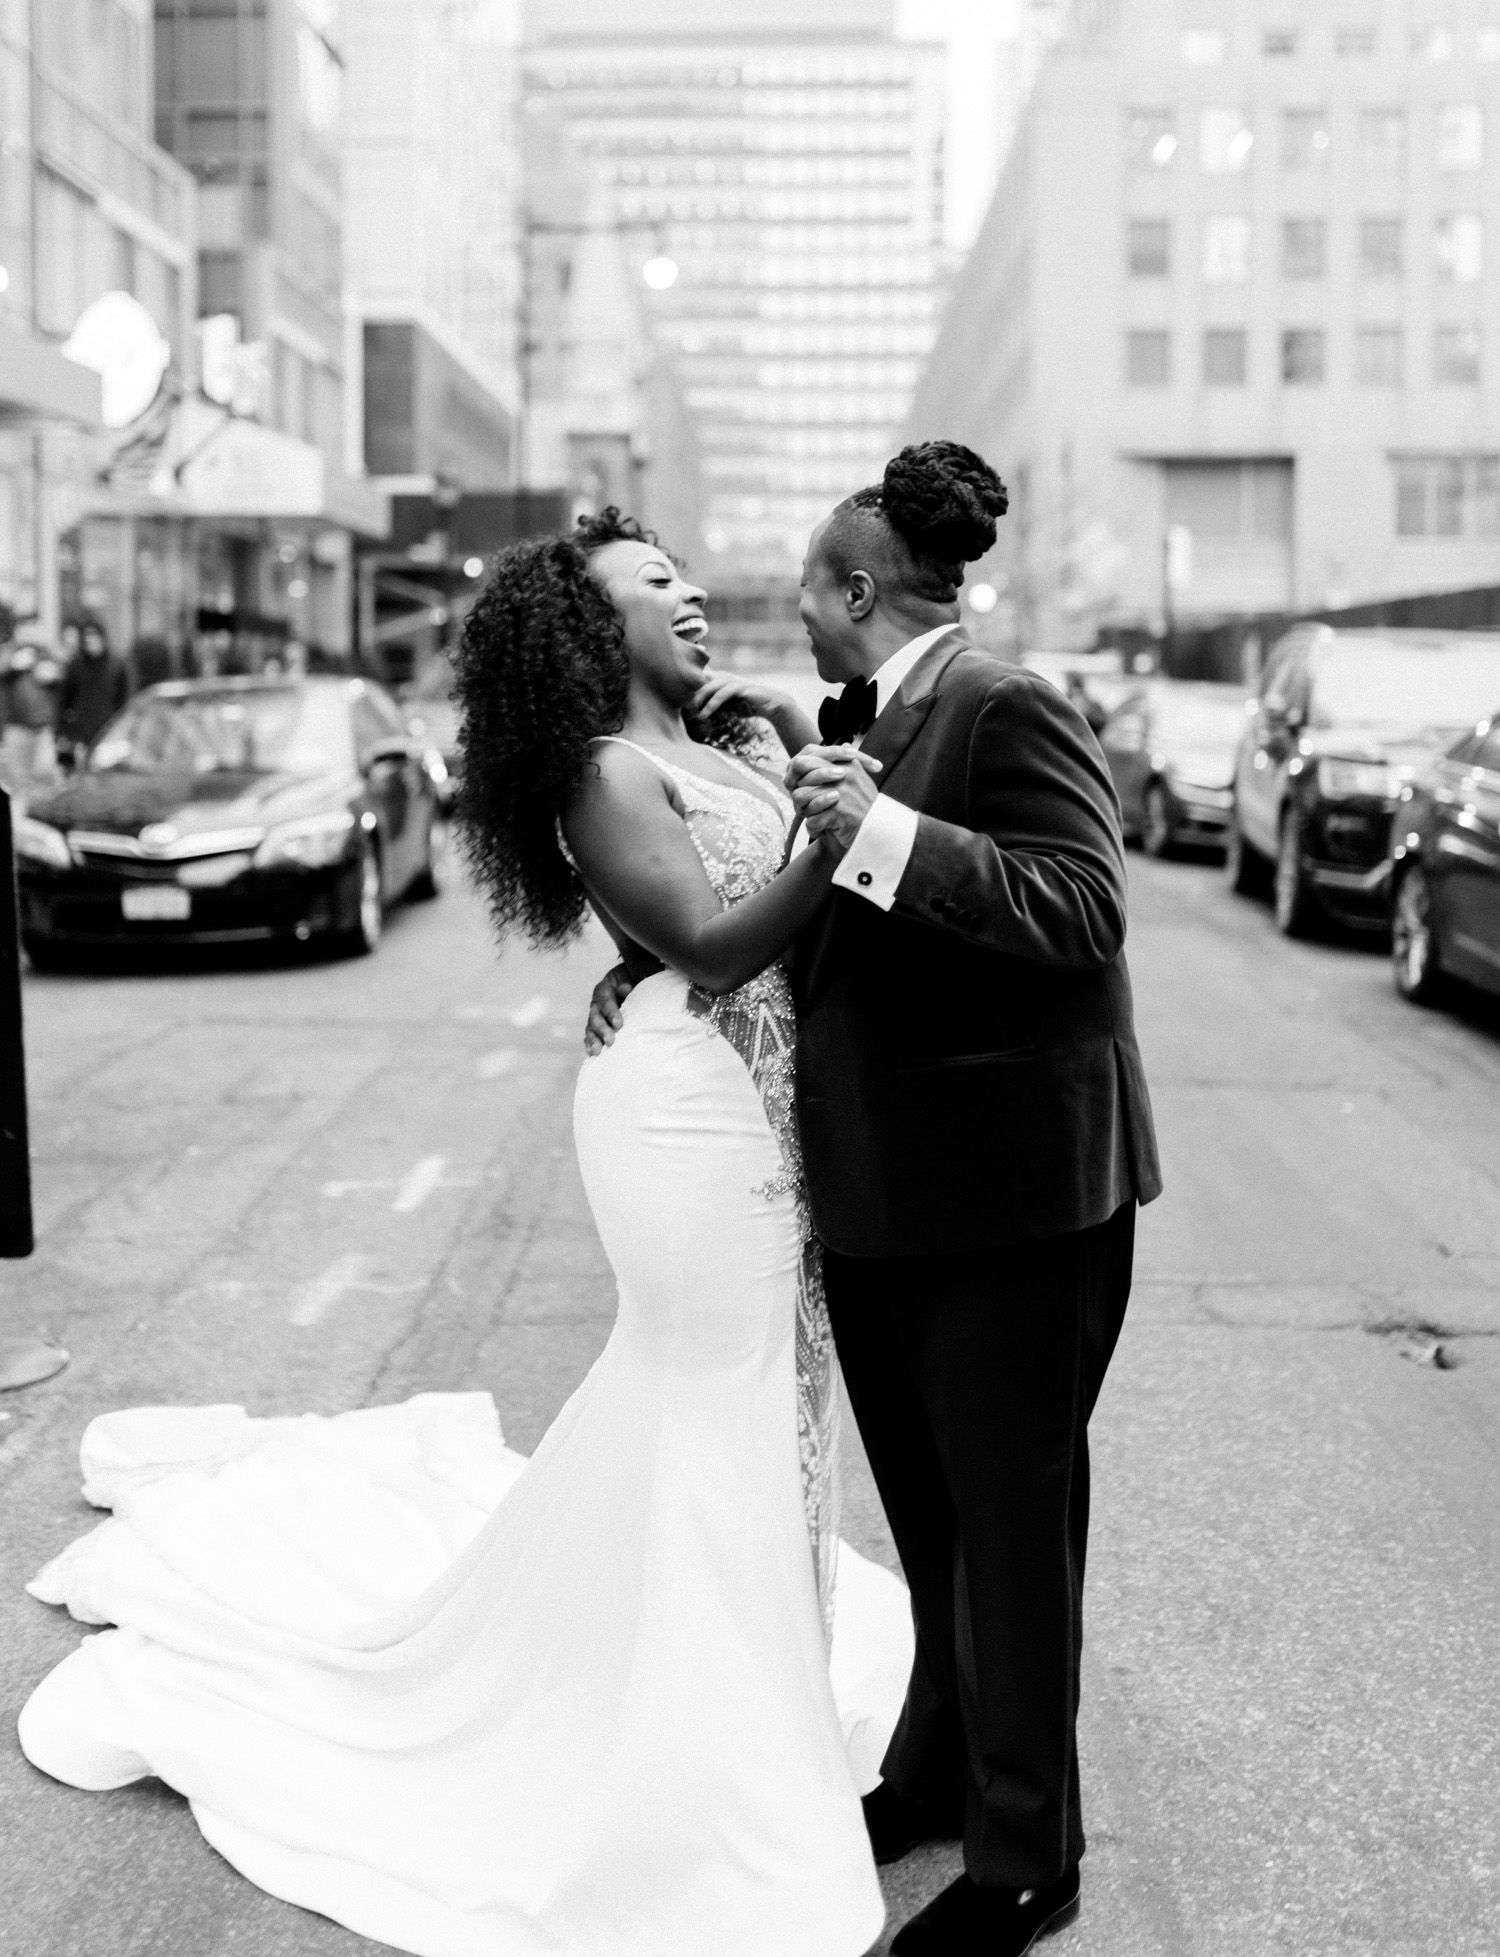 Before their Brooklyn Winery wedding, a black lesbian wedding couple laugh together in the streets of New York City